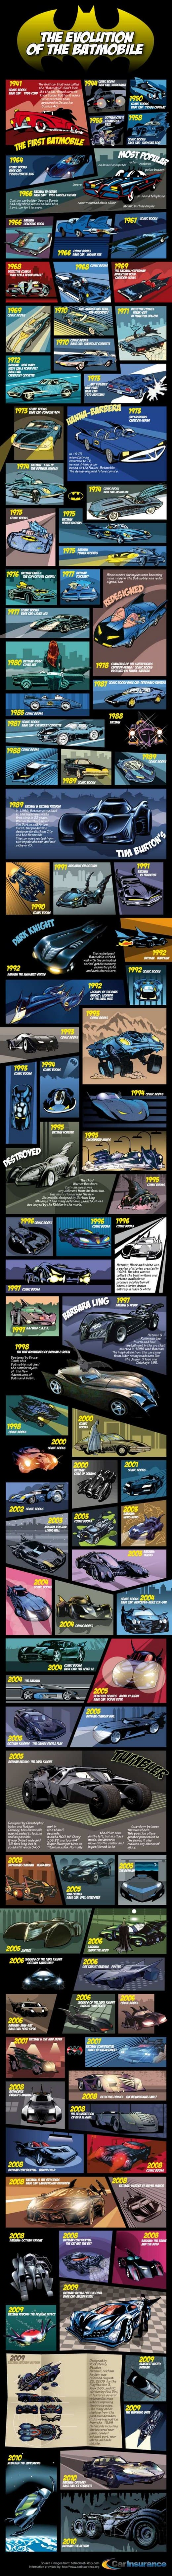 Batmobile Infographic2